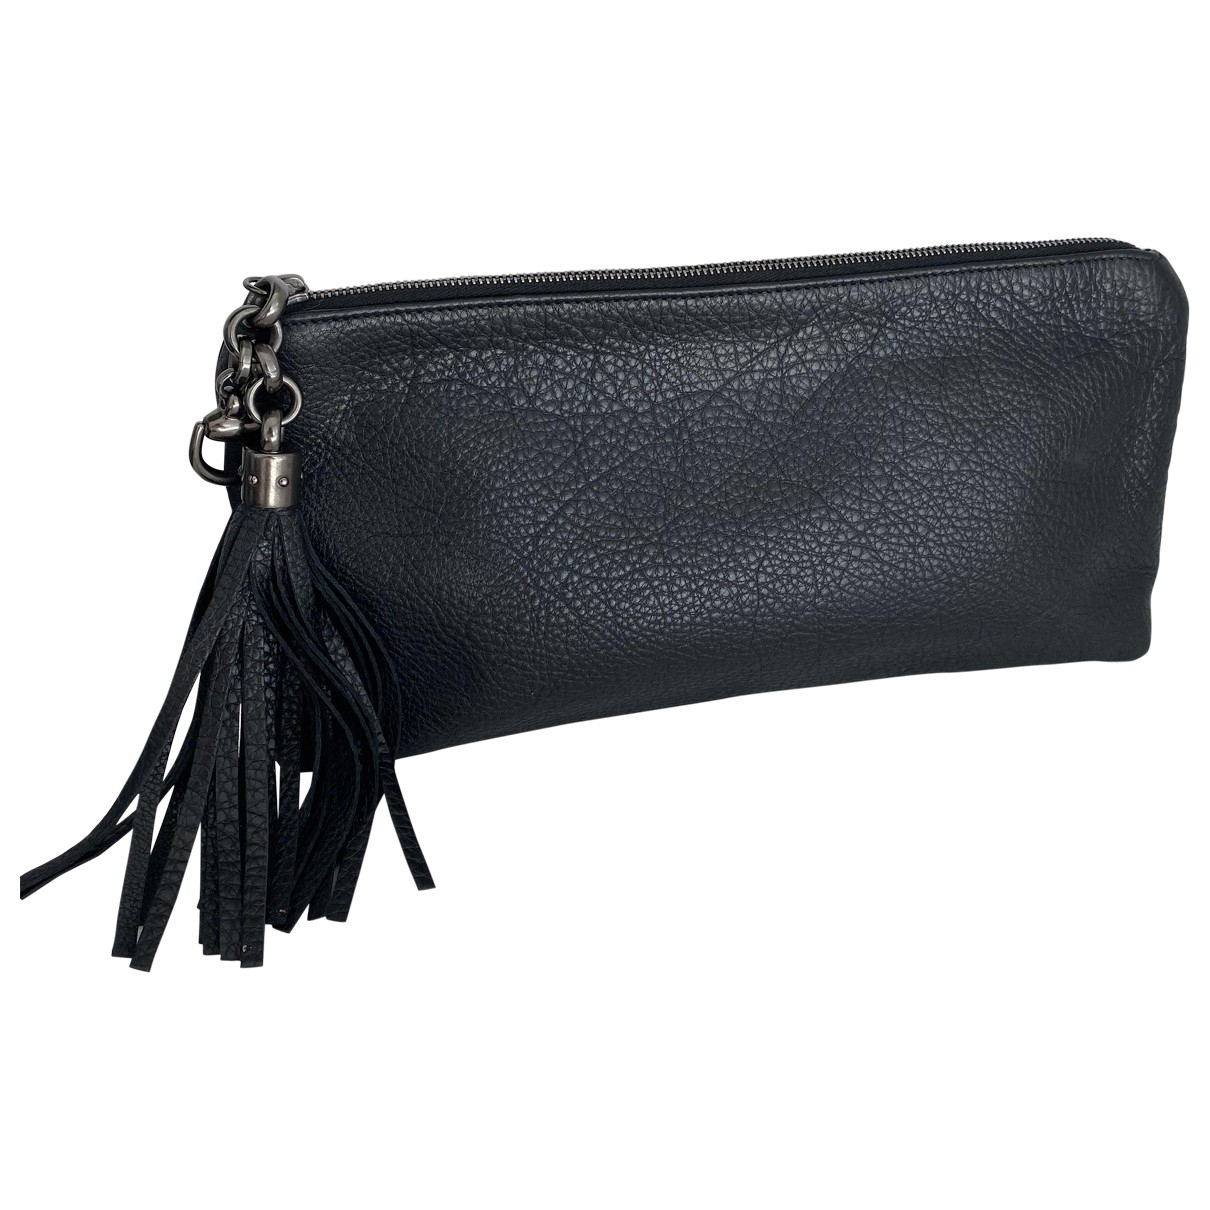 Gucci Hobo Black Leather Clutch bag for Women \N